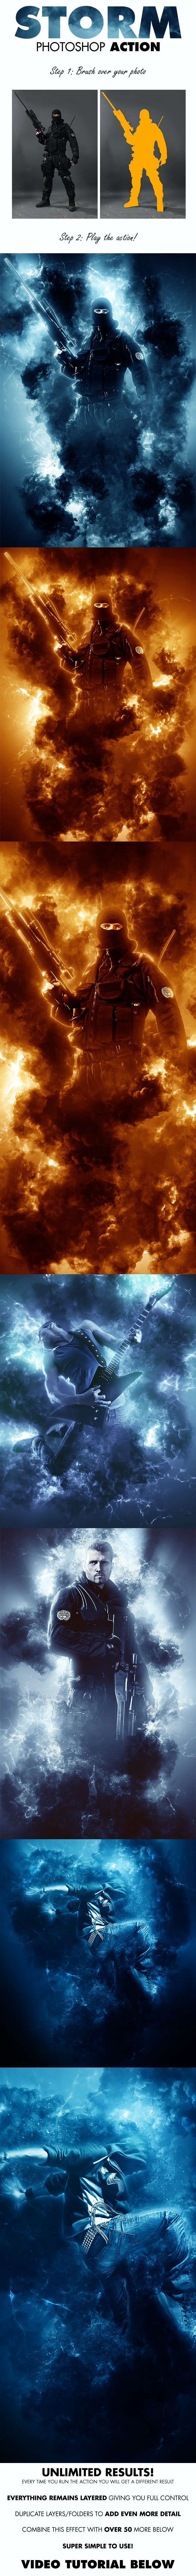 Storm Photoshop Action - Photo Effects Actions